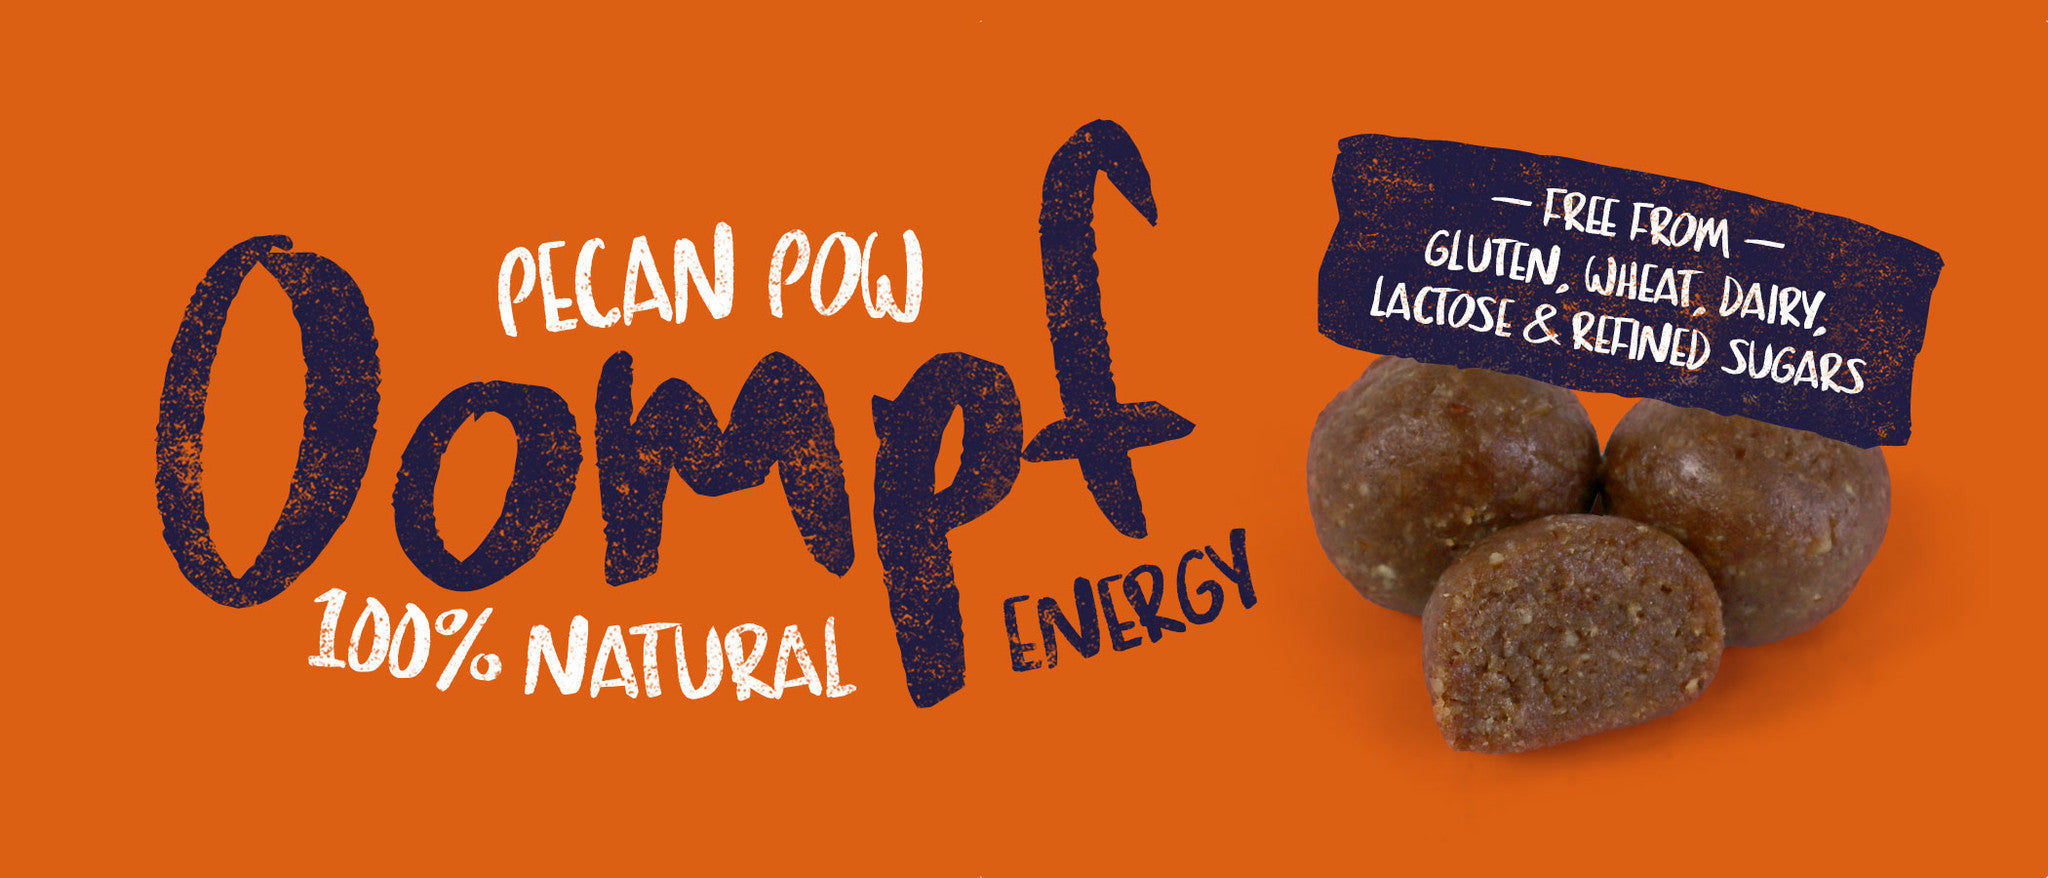 Pecan Pow <br/> Natural Energy Balls<br/>(Pack of 3)